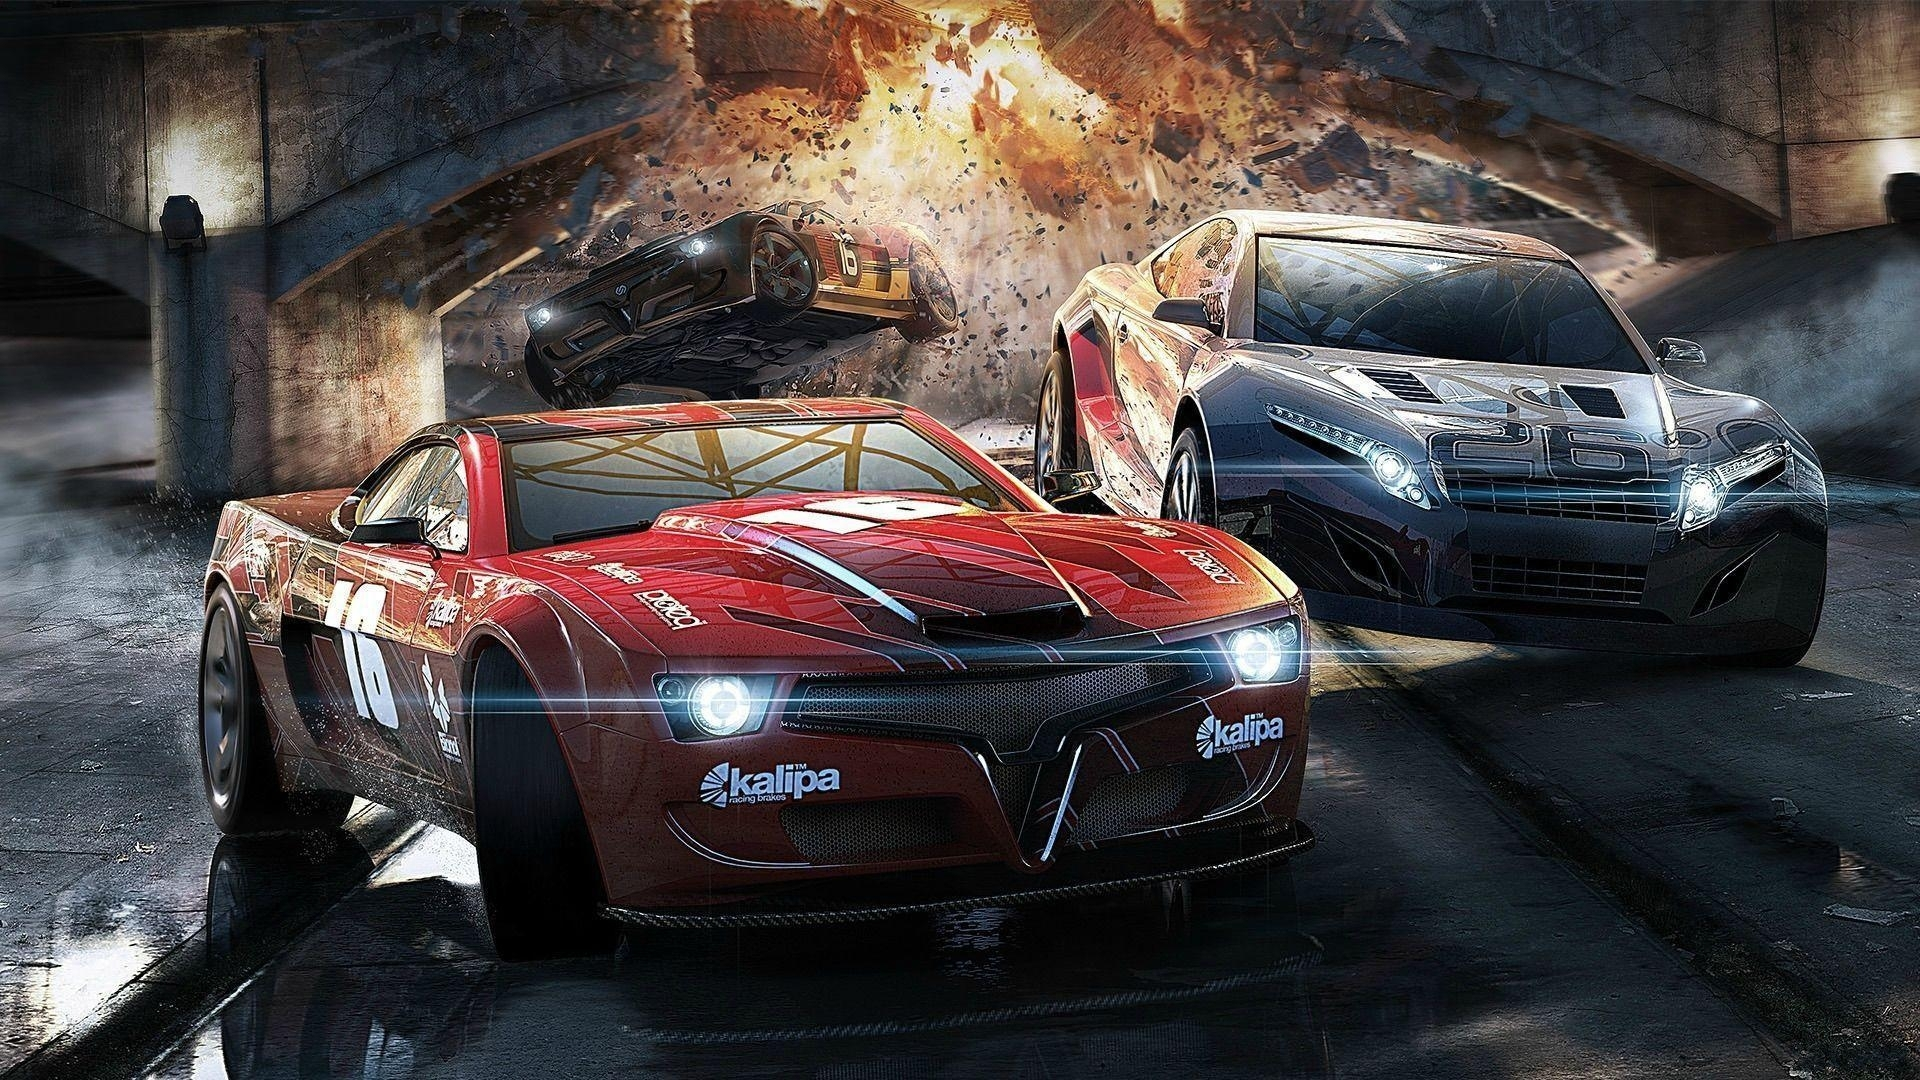 street race cars wallpapers - wallpaper cave